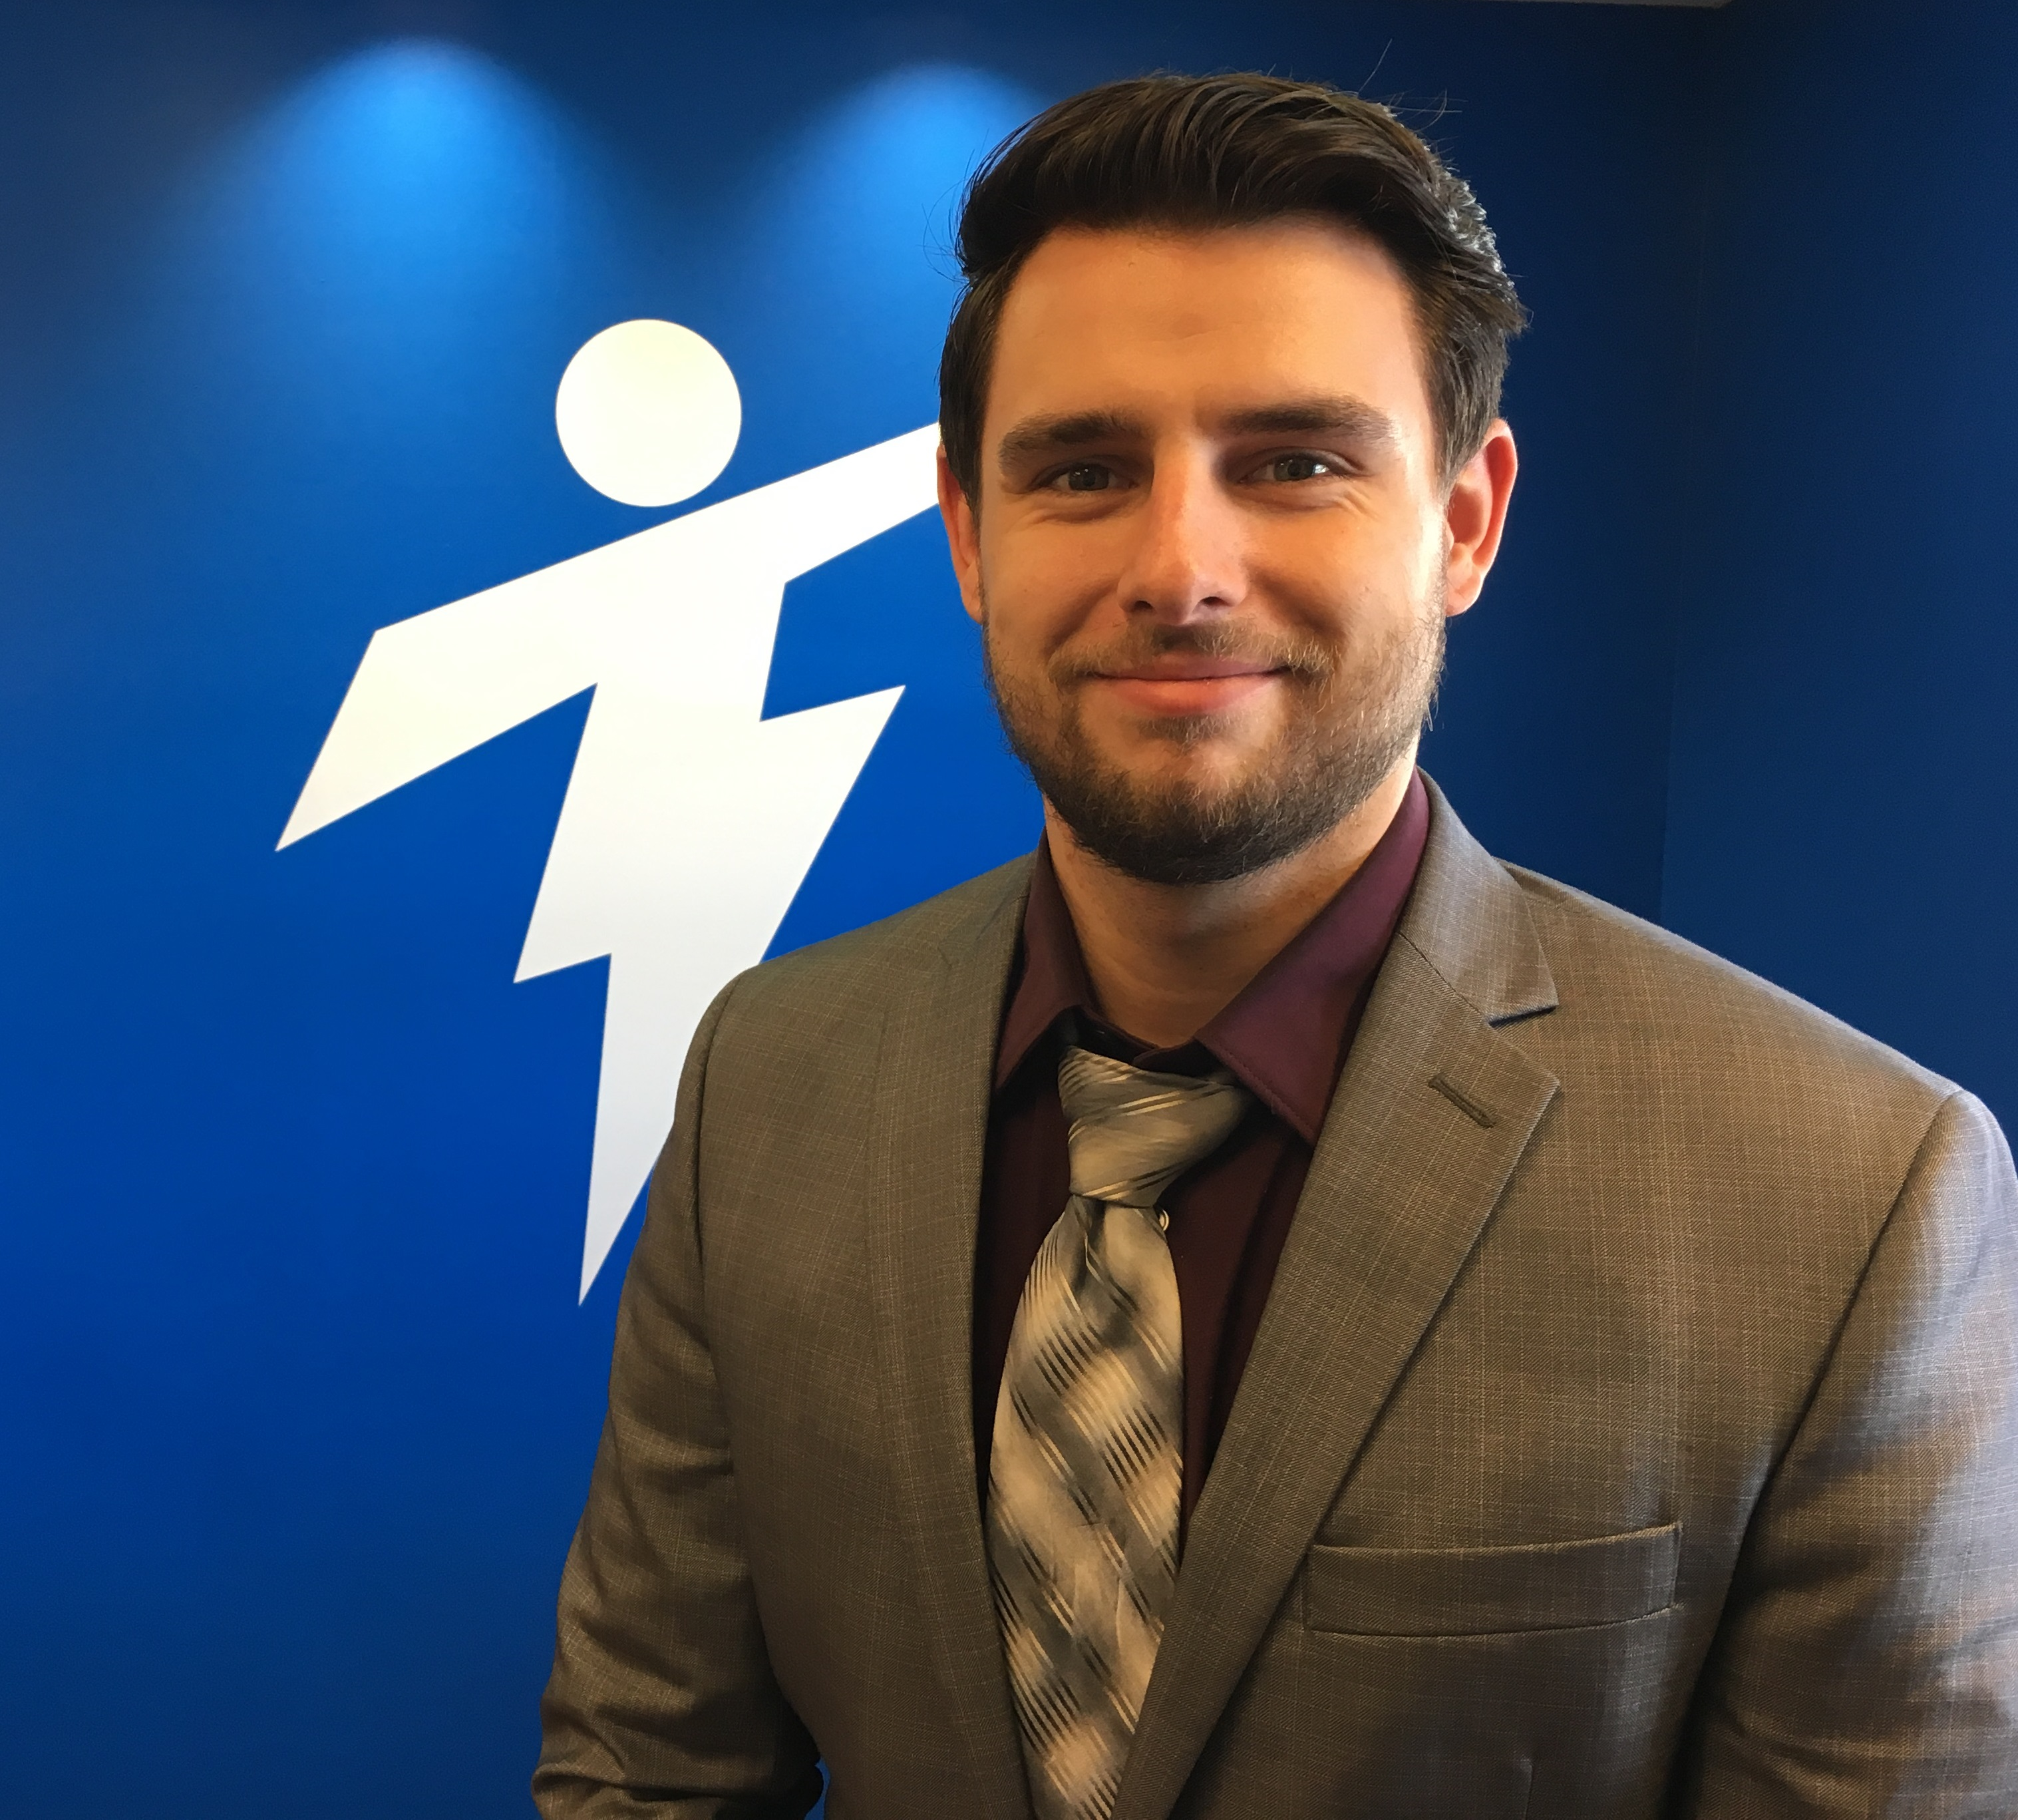 Matt Angelo Sales Recruiter at Treeline, Inc.